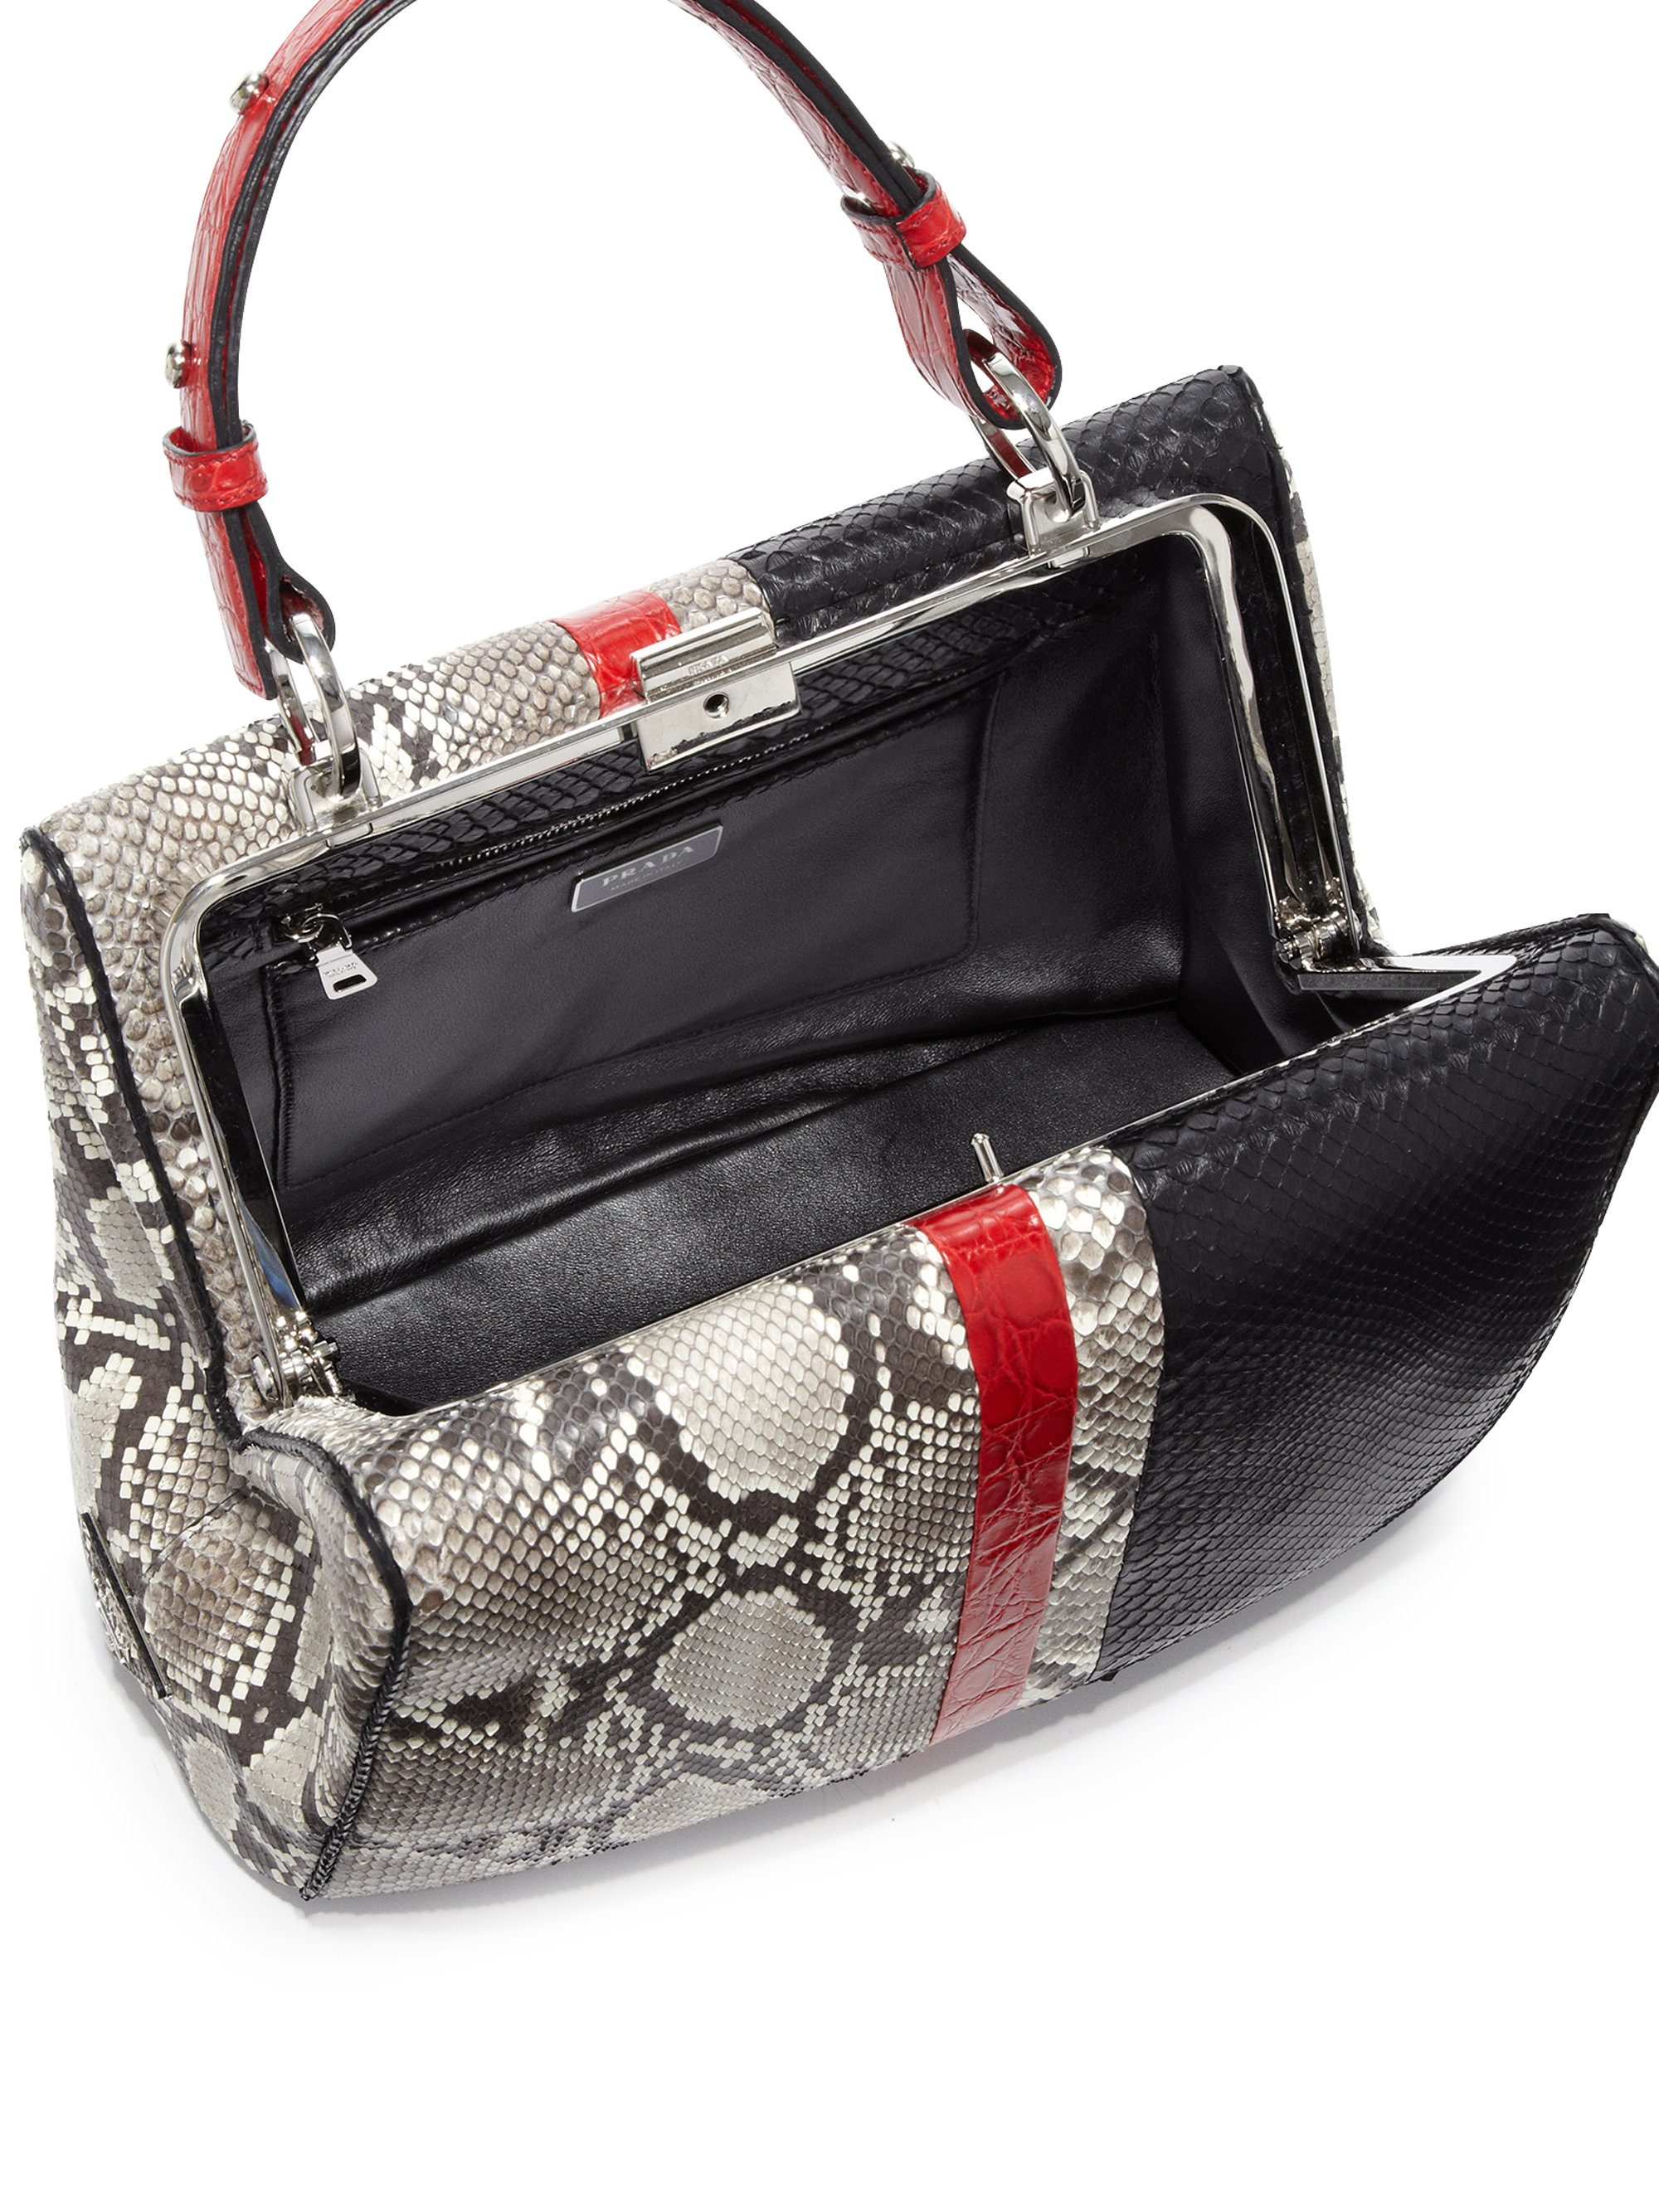 935e519810 ... 50% off lyst prada python crocodile baiadera frame bag in black 047bc  aec49